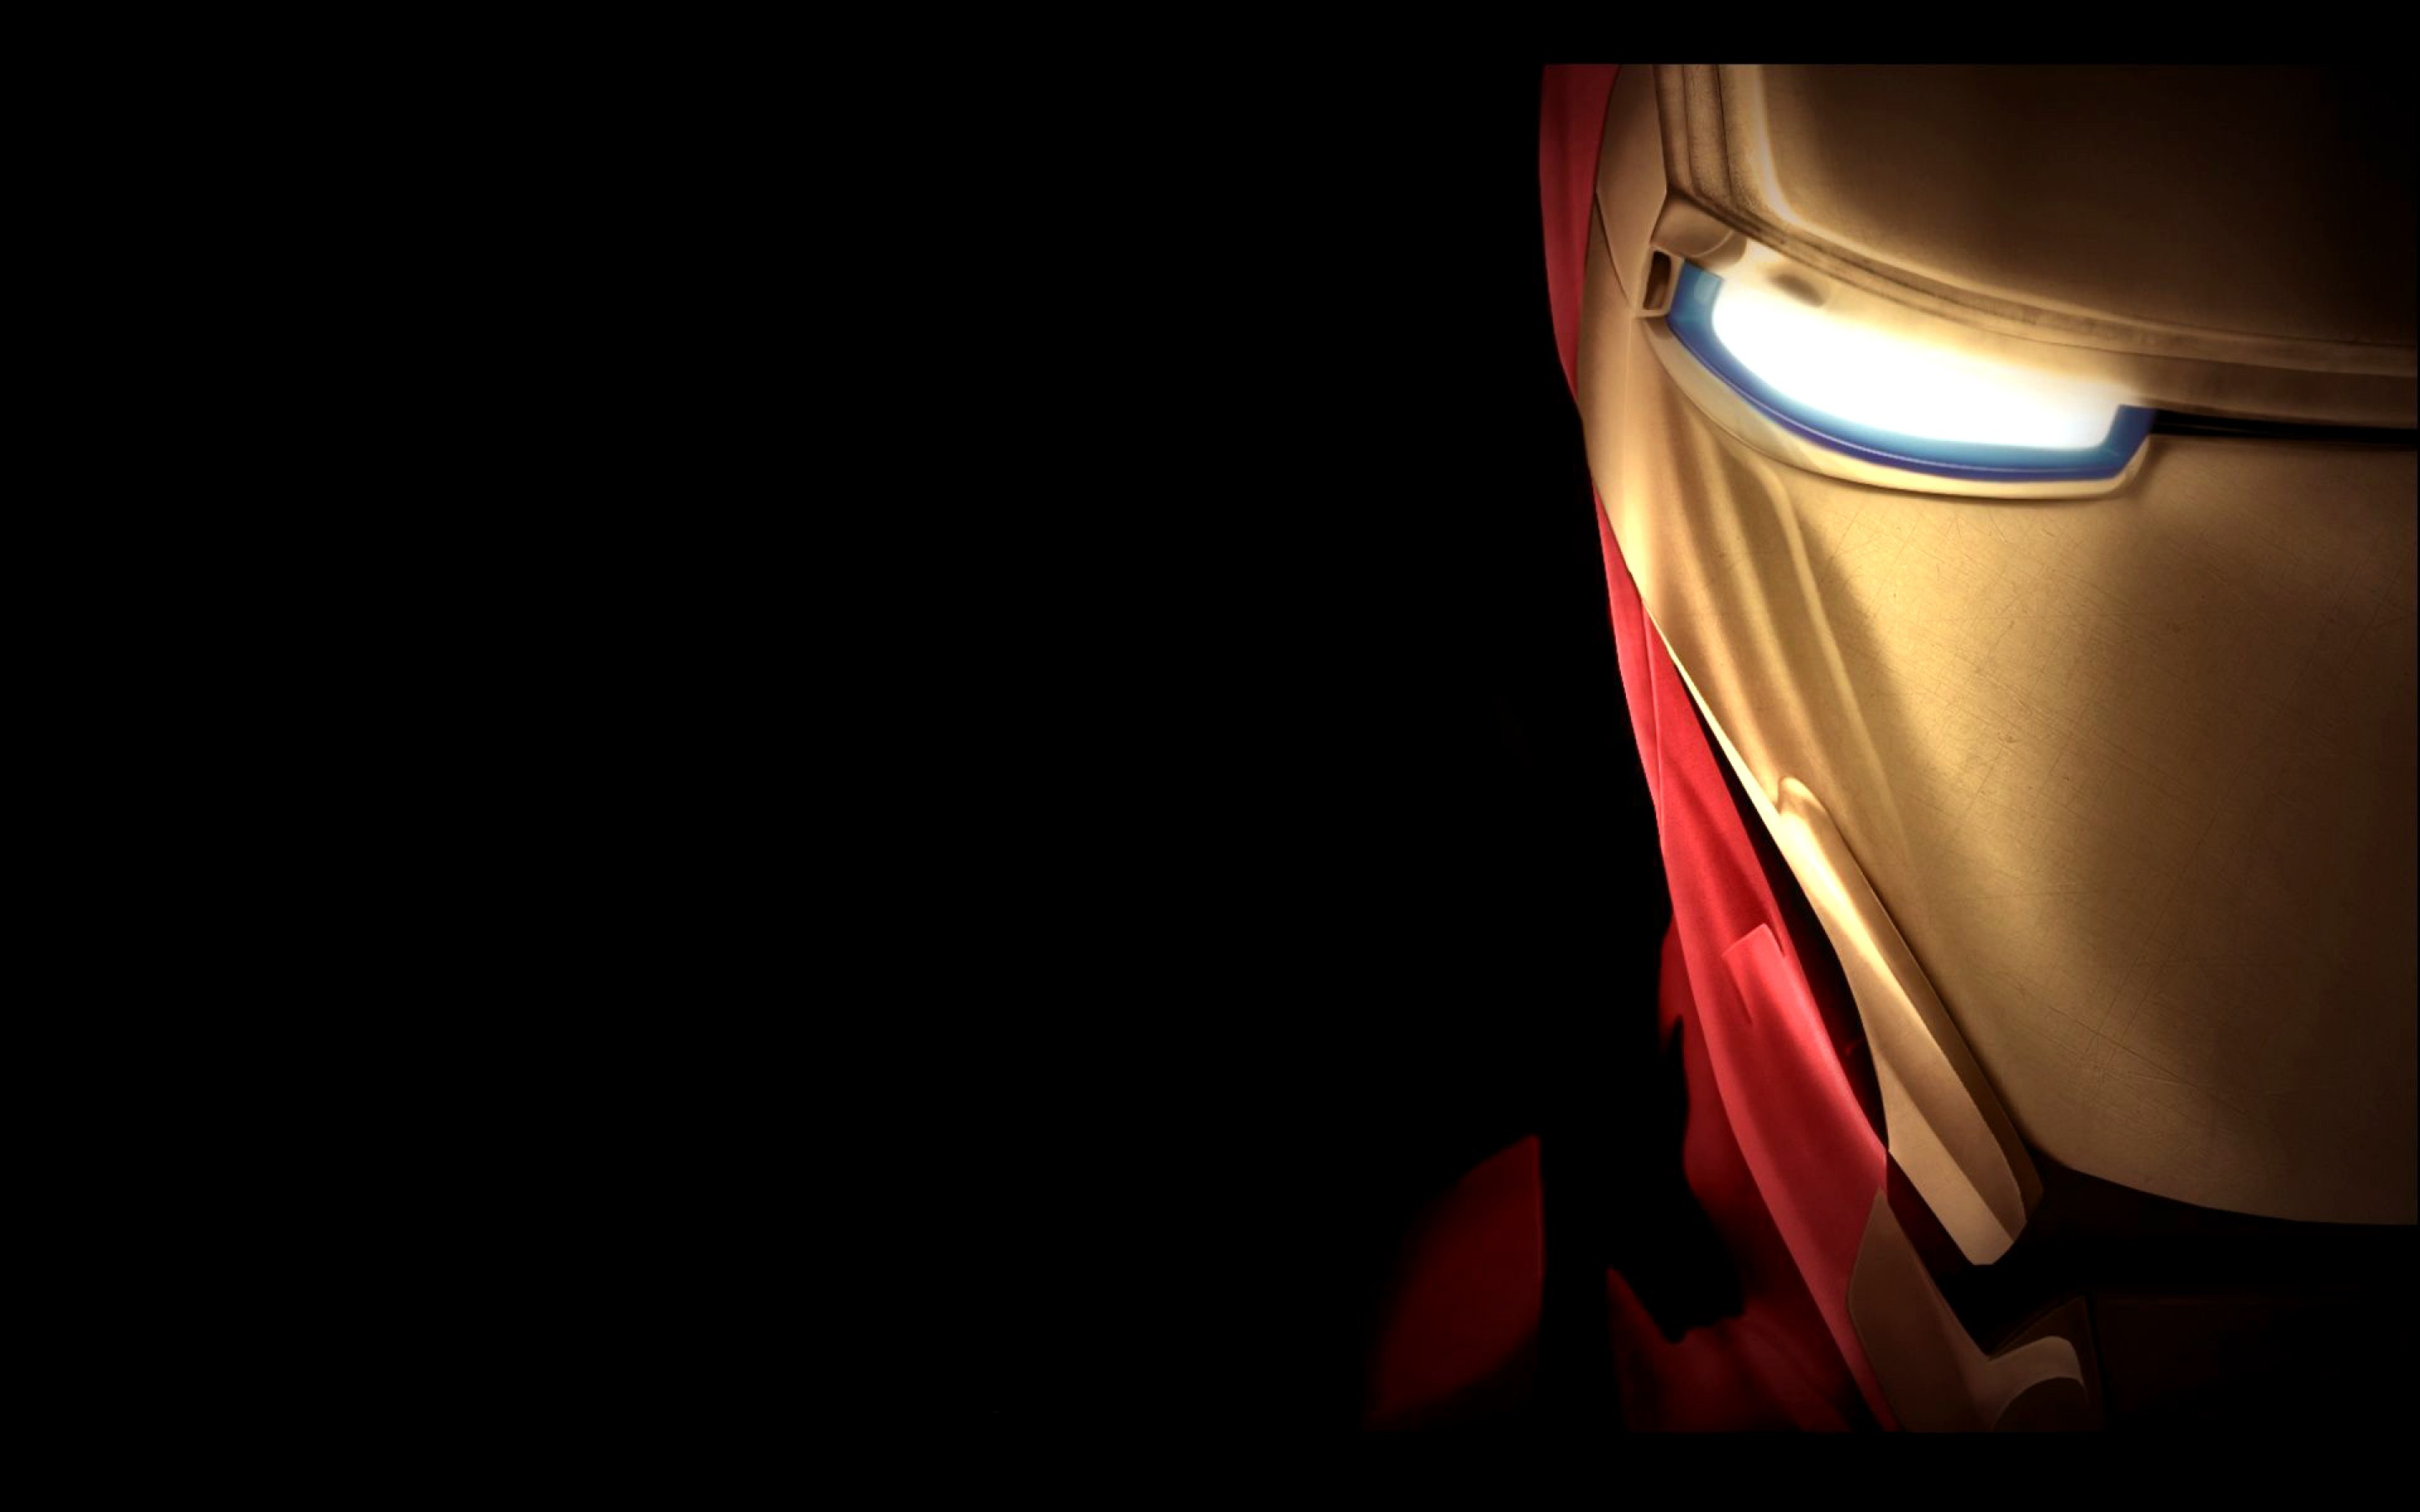 Cool Wallpaper with Iron Man Mask (Face Image) in Close Up ...